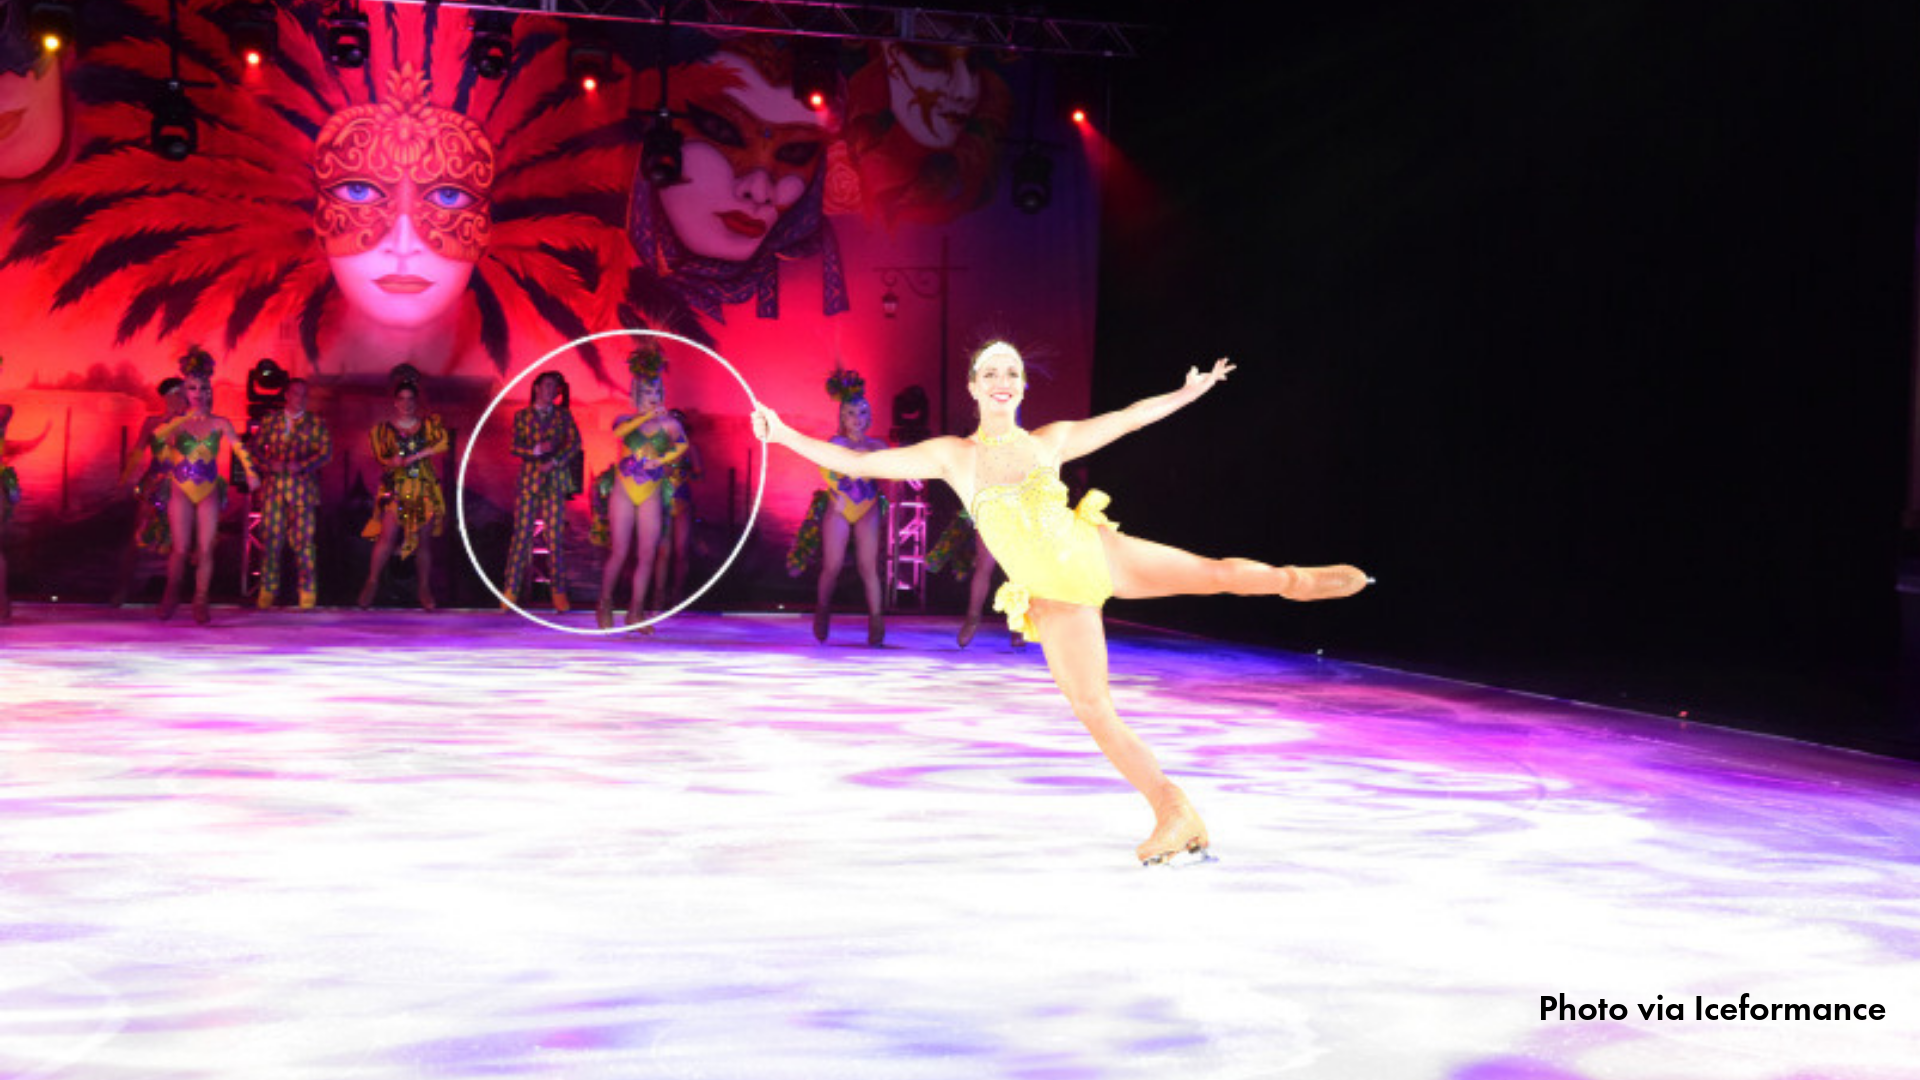 One ice skater performing with bright pink lights